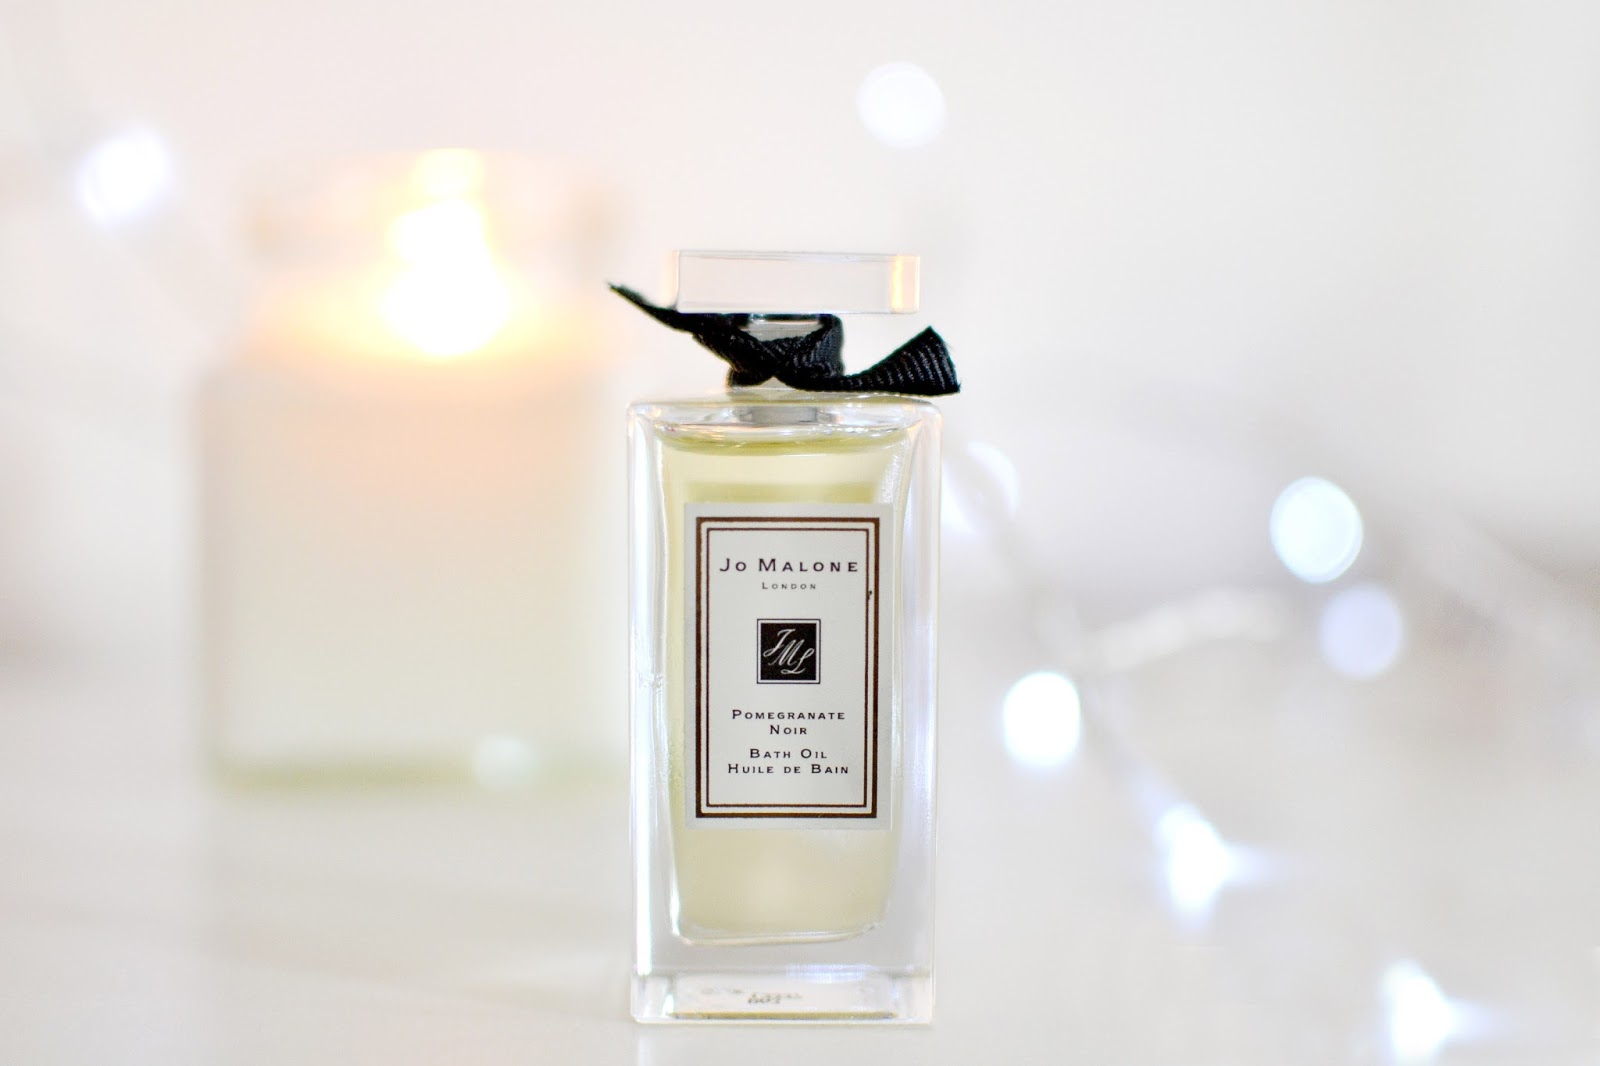 jo malone pomegranate noir bath oil